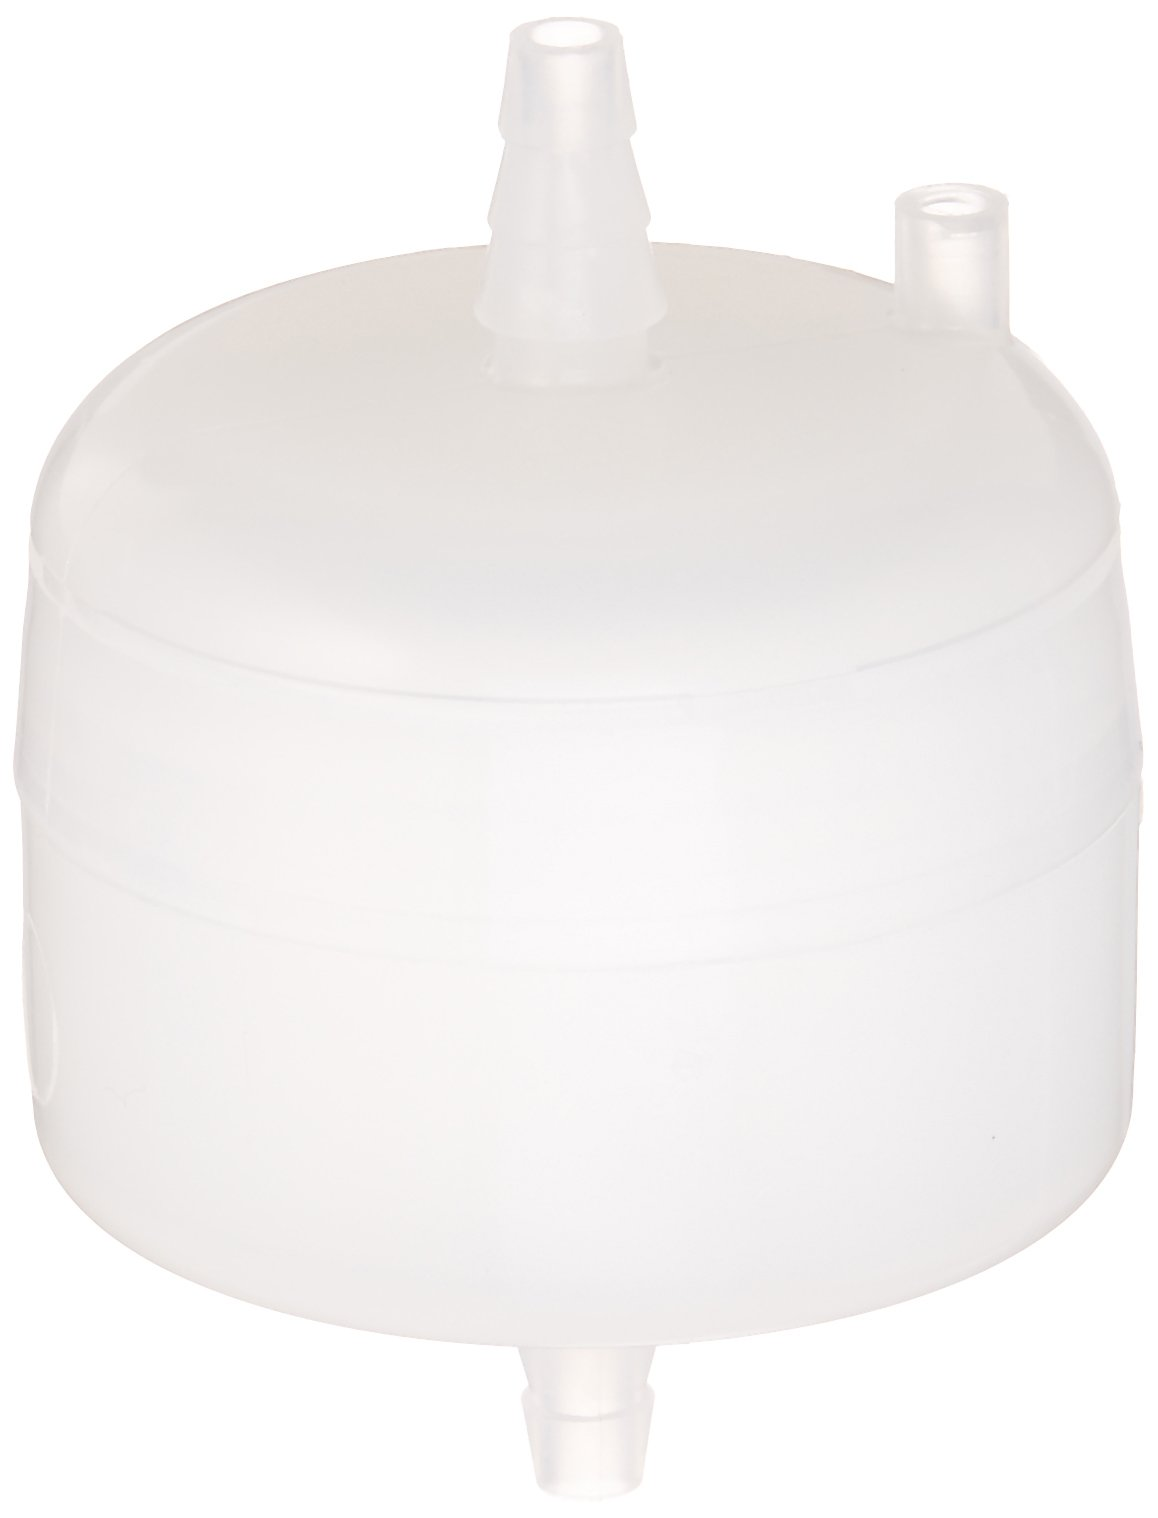 Whatman 4651B33EA 6700-3602 Polycap TF 36 PTFE Membrane Capsule Filter with SB Inlet and Outlet, 60 PSI Maximum Pressure, 0.2 μm by Whatman